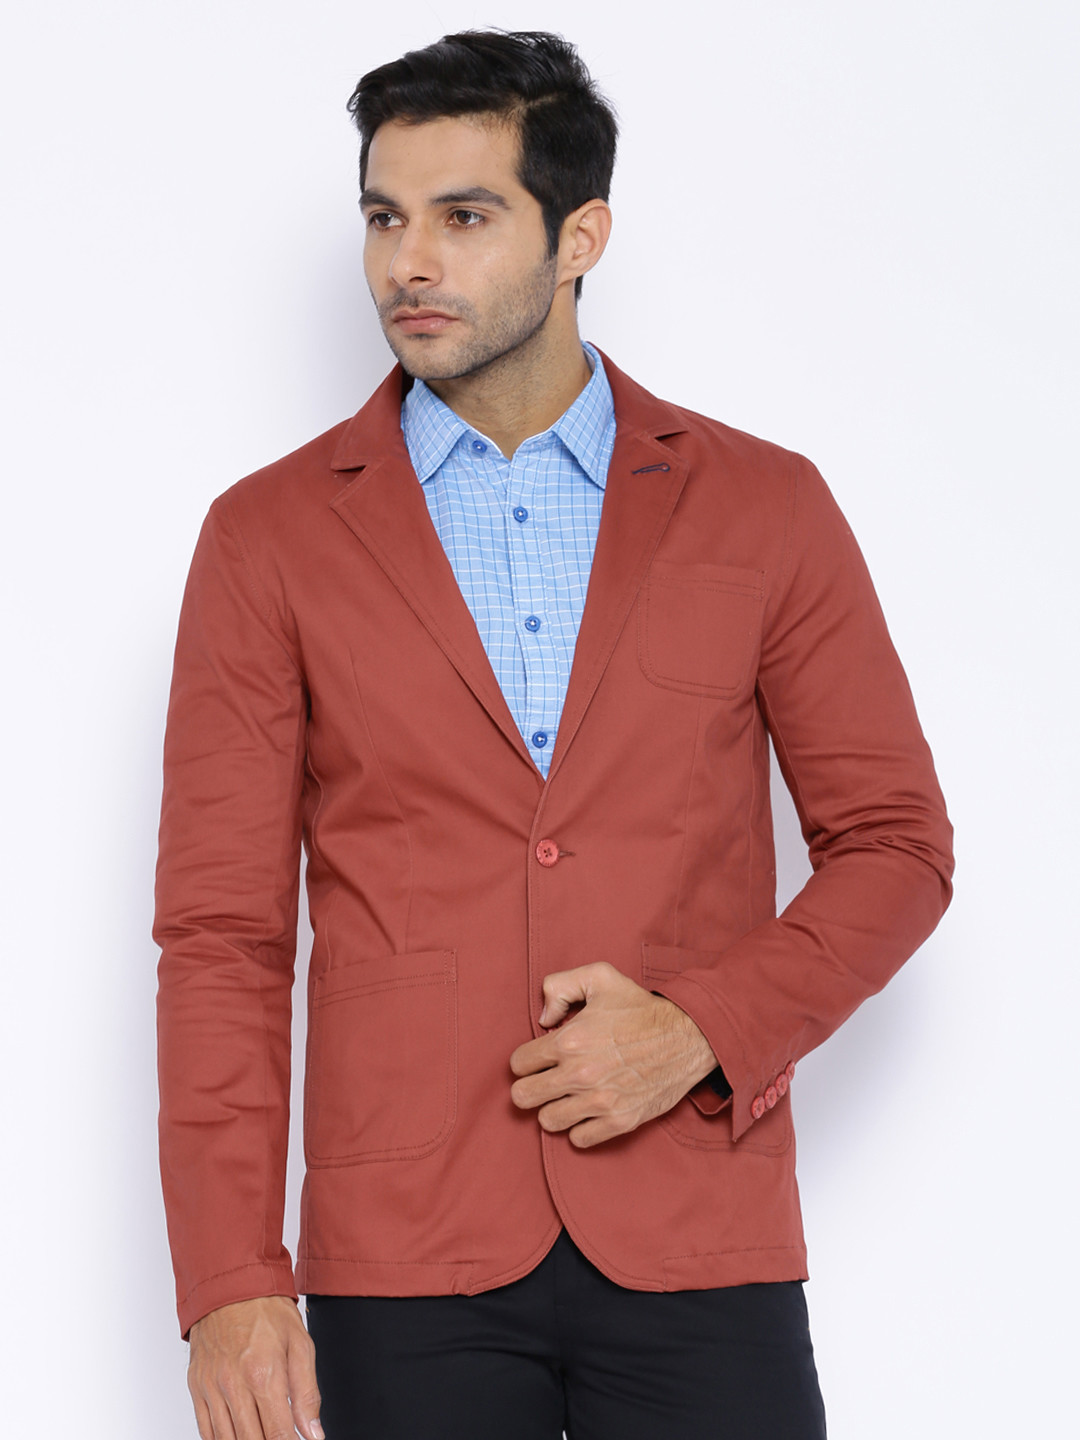 The Indian Garage Co. Brick Red Blazer at FLAT 48% OFF discount offer